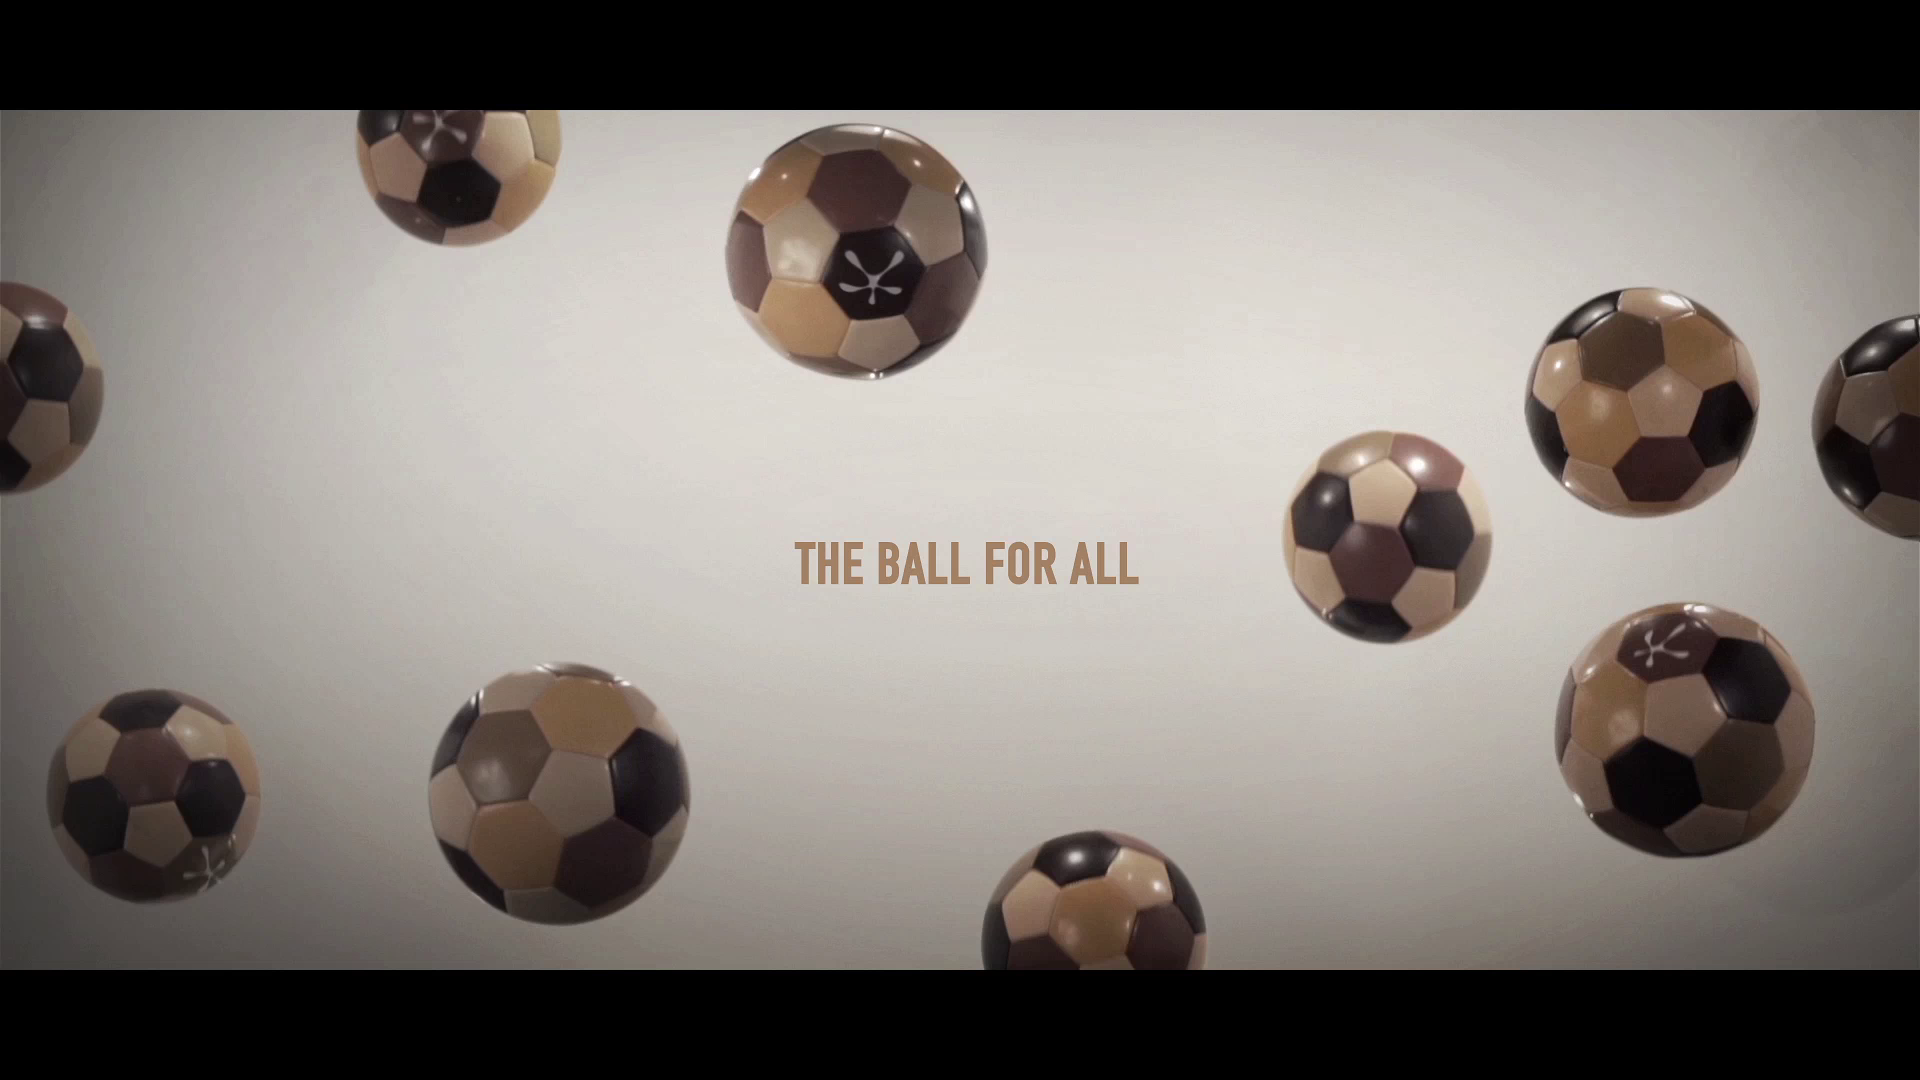 The Ball for All